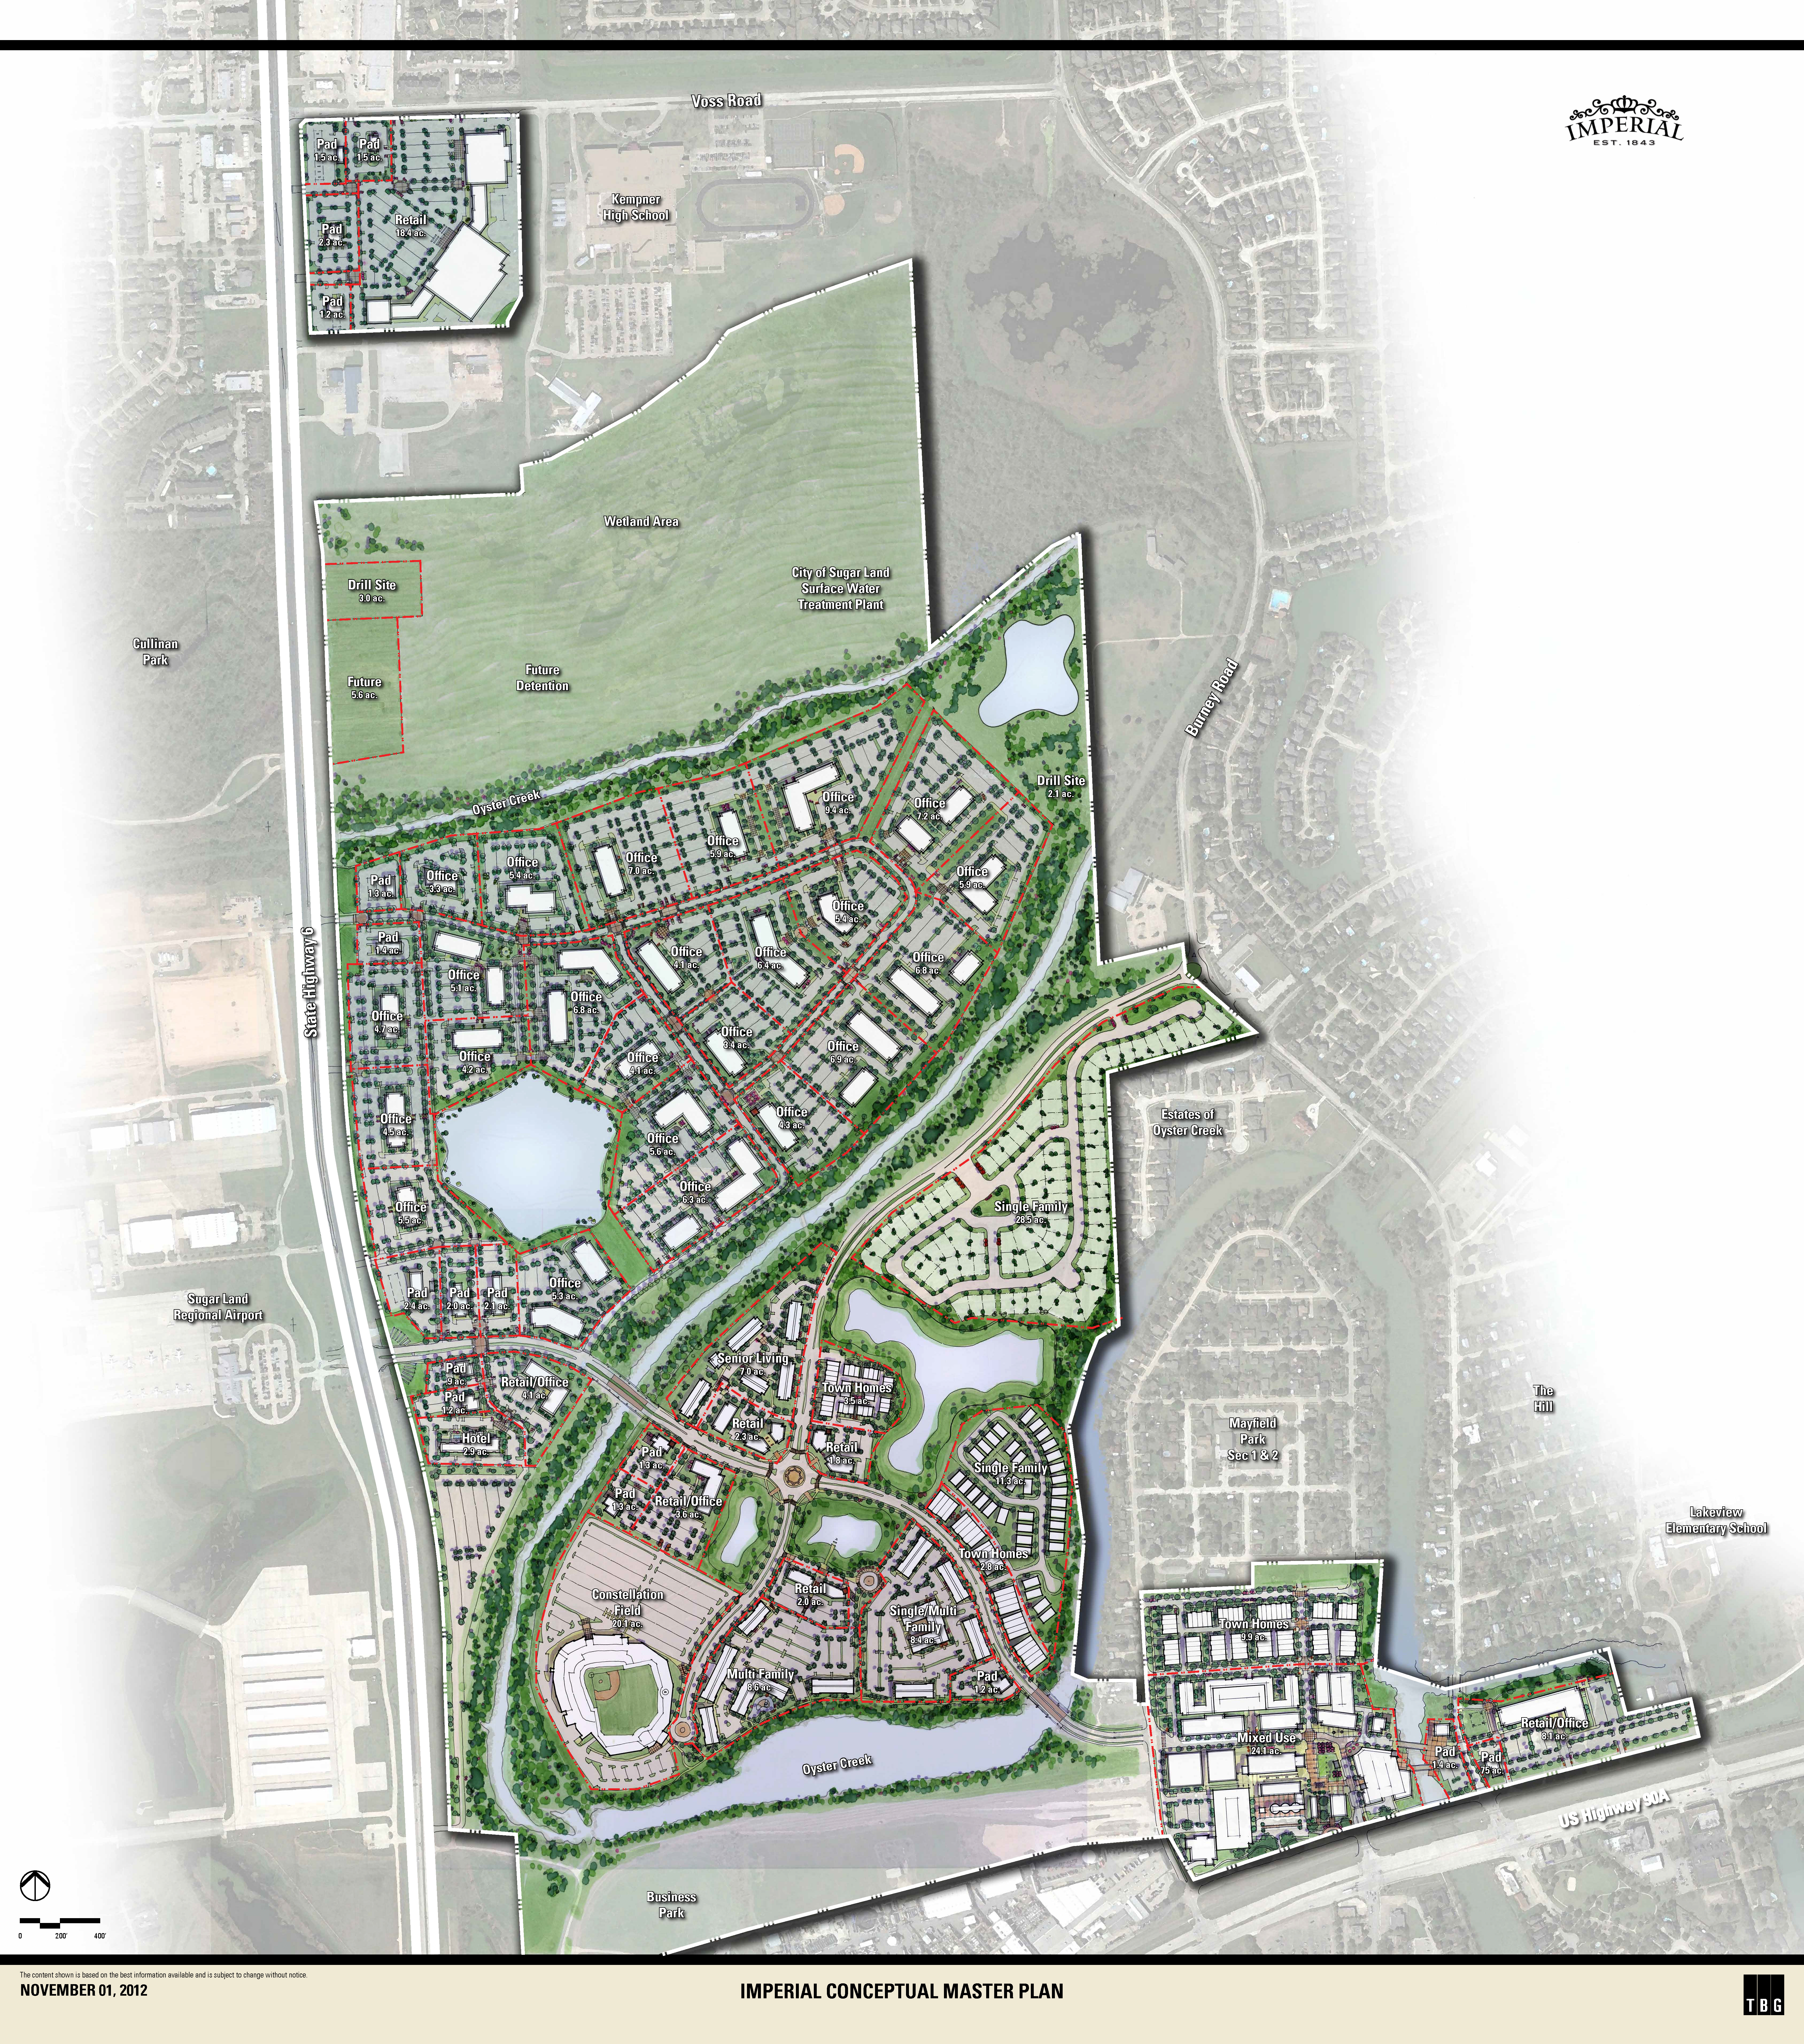 Imperial Land Plan Overview, Sugar Land